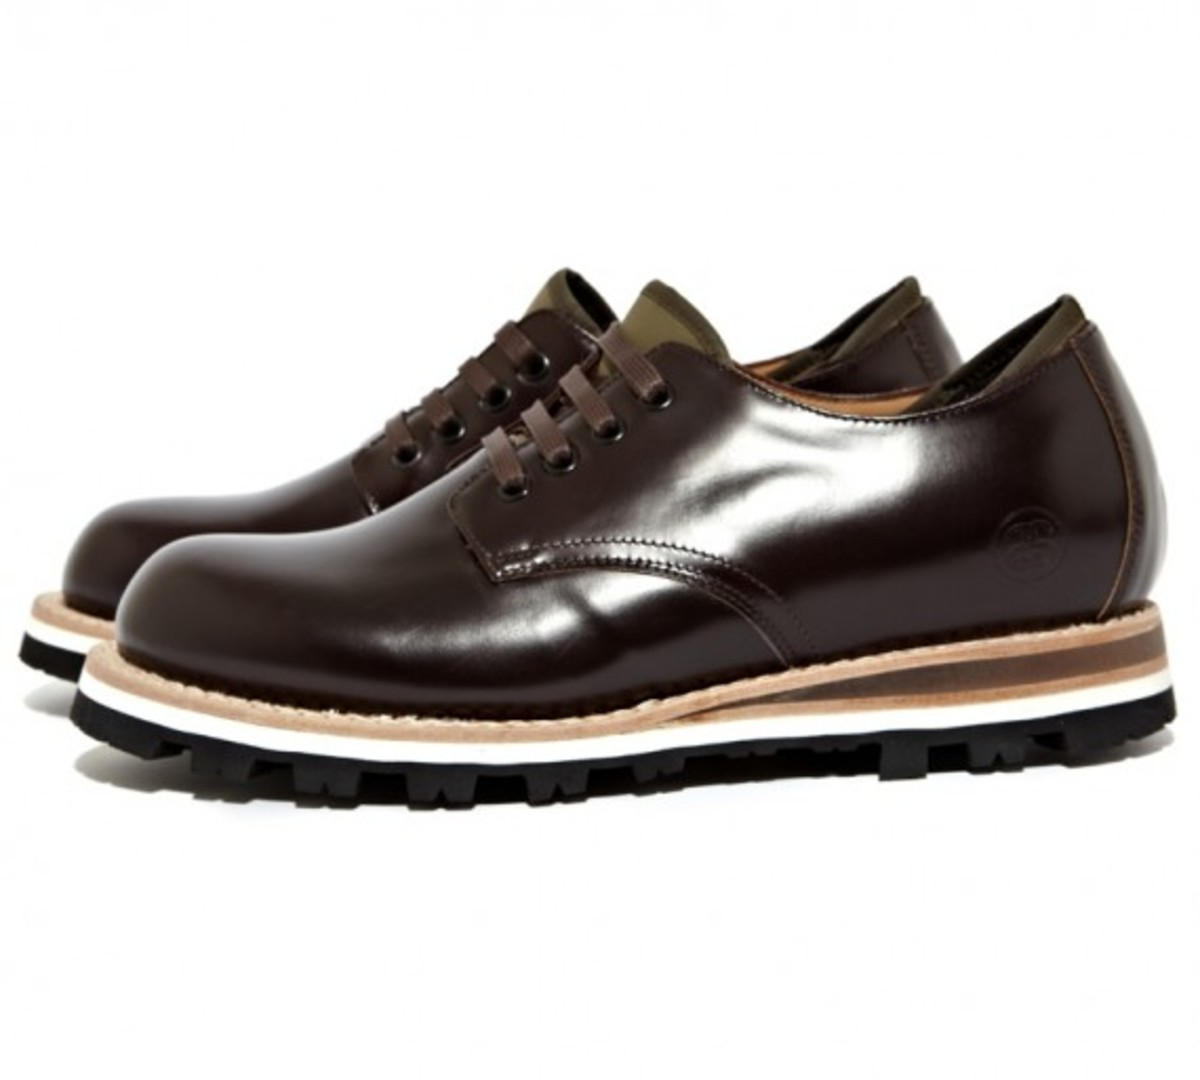 stussy-deluxe-be-positive-leather-shoes-05